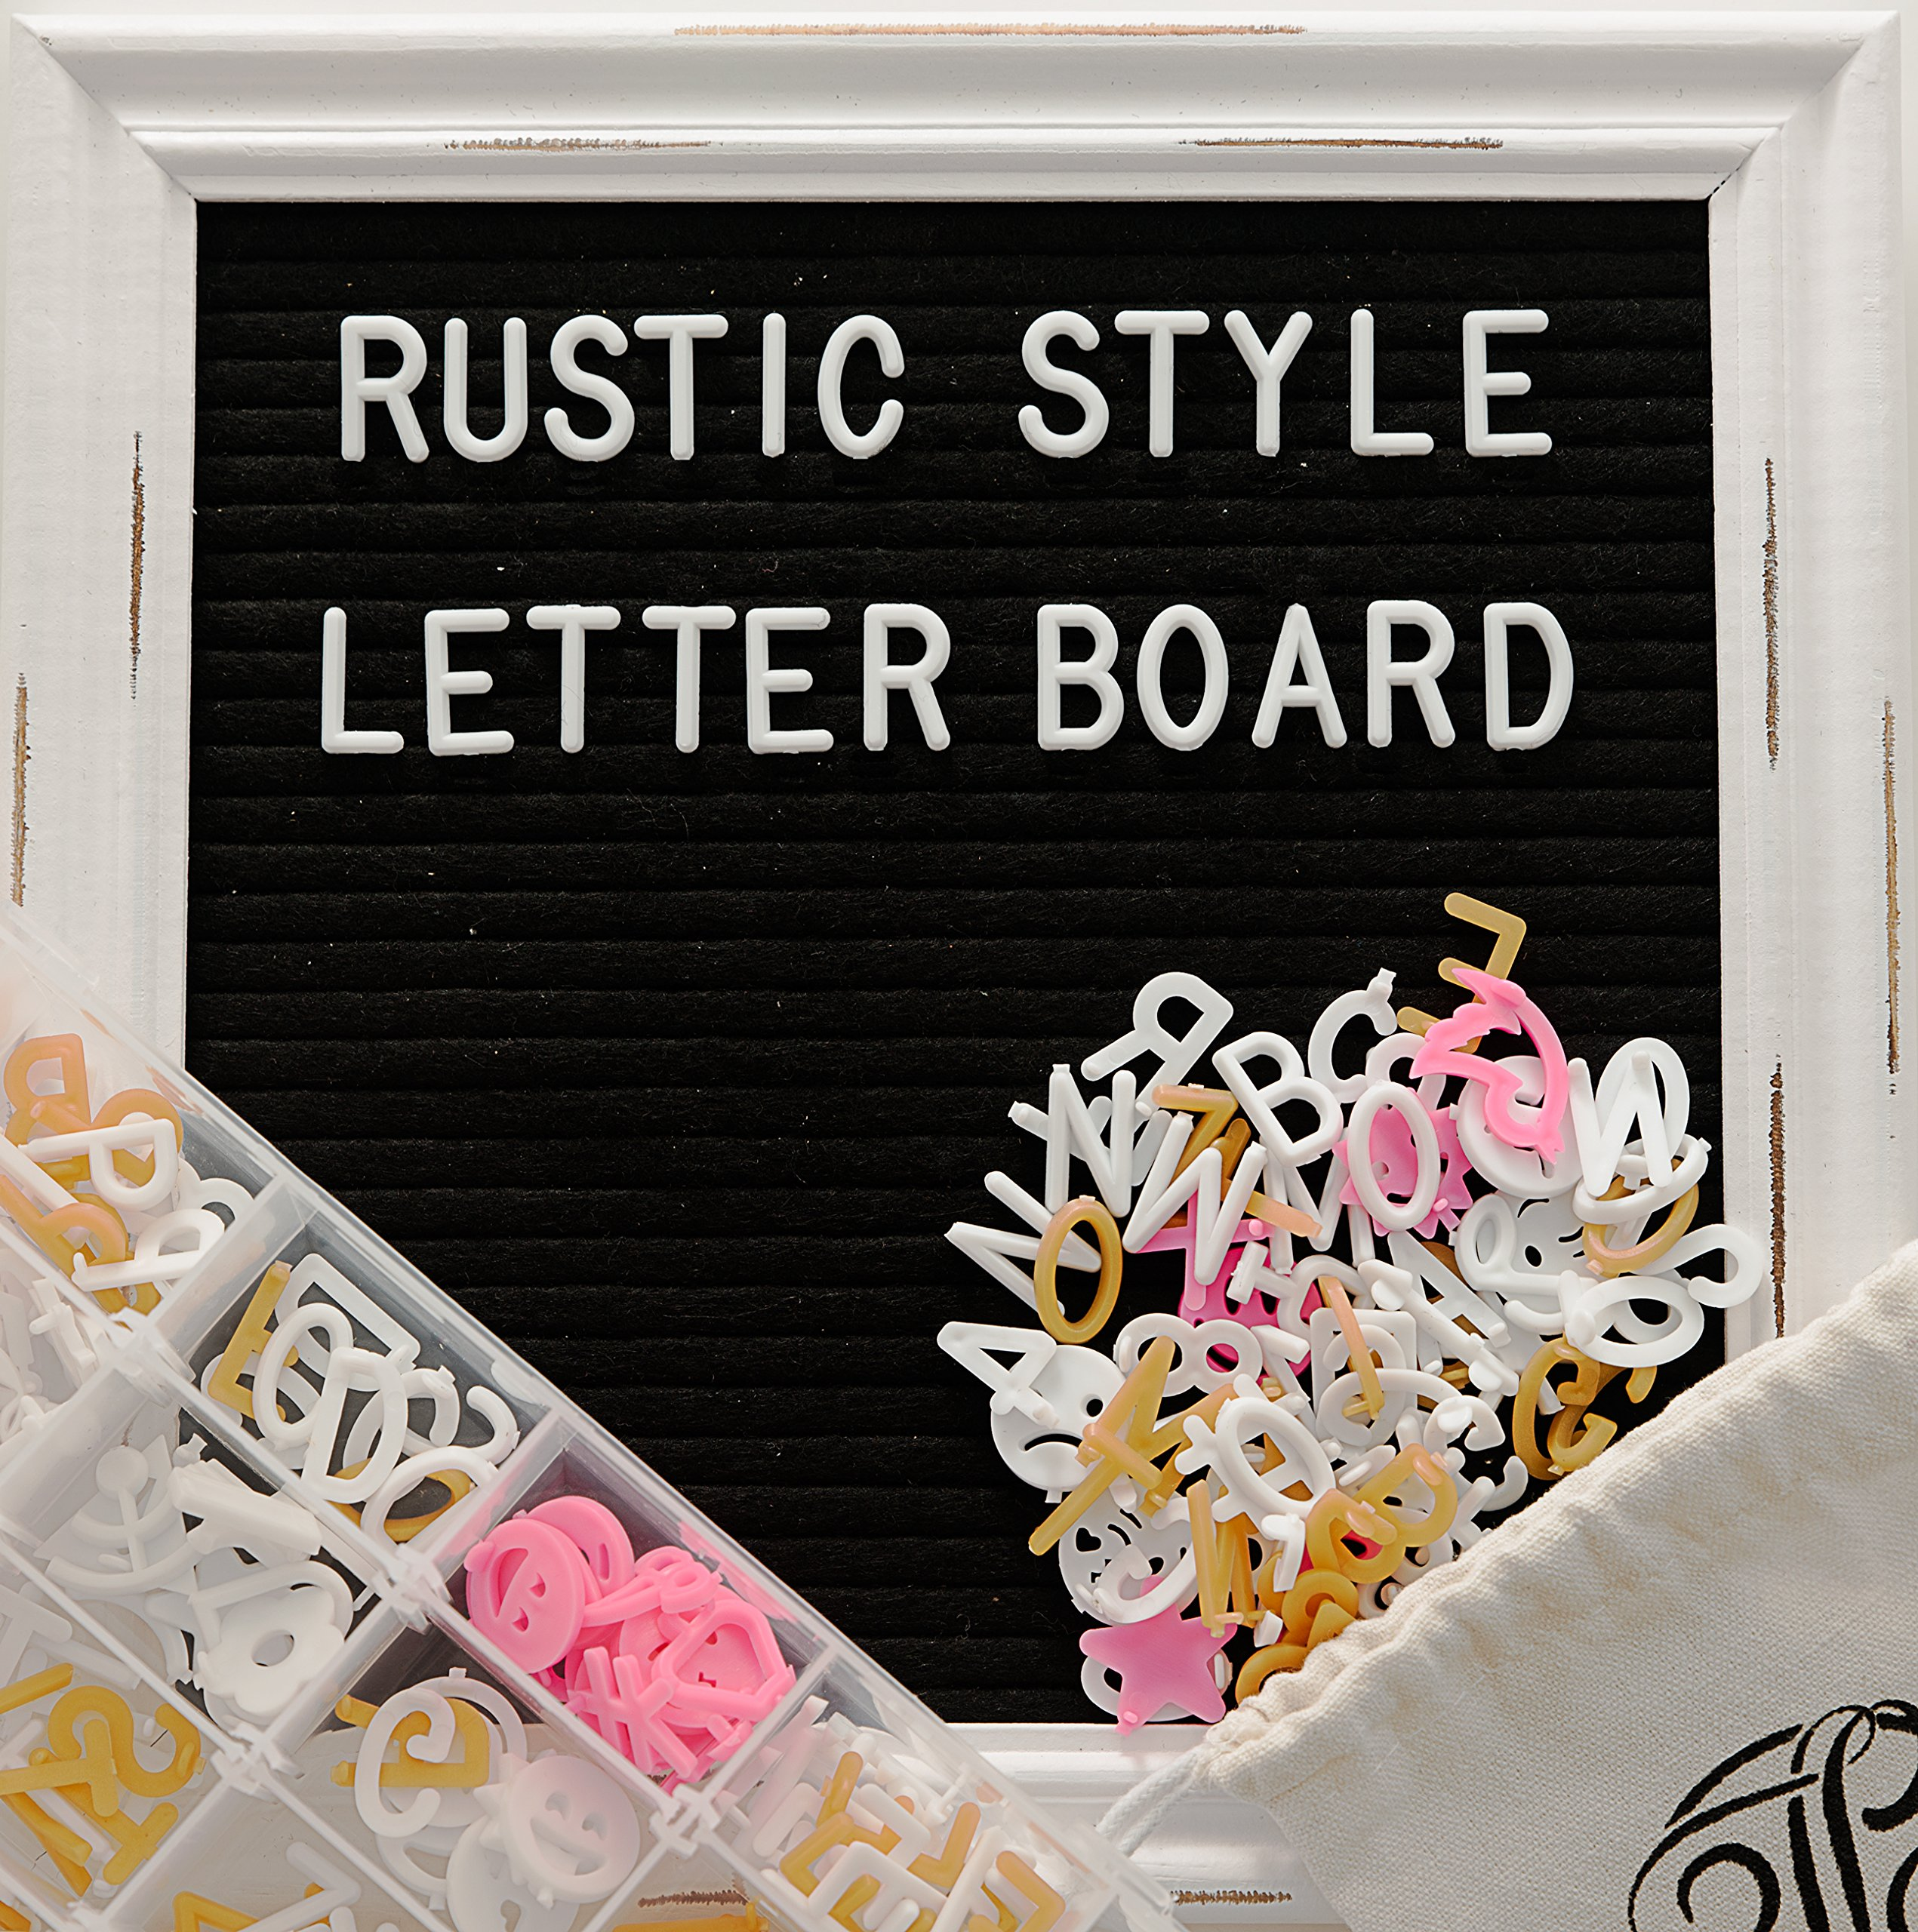 Letter Board - Rustic White Wood Vintage Frame, Black Felt 10x10 Inch Antique Changeable Message Board, Sorting Tray, 525 Precut White, Gold, Pink Letters, Numbers, Emojis, Stand, Cotton Bag JL Brands